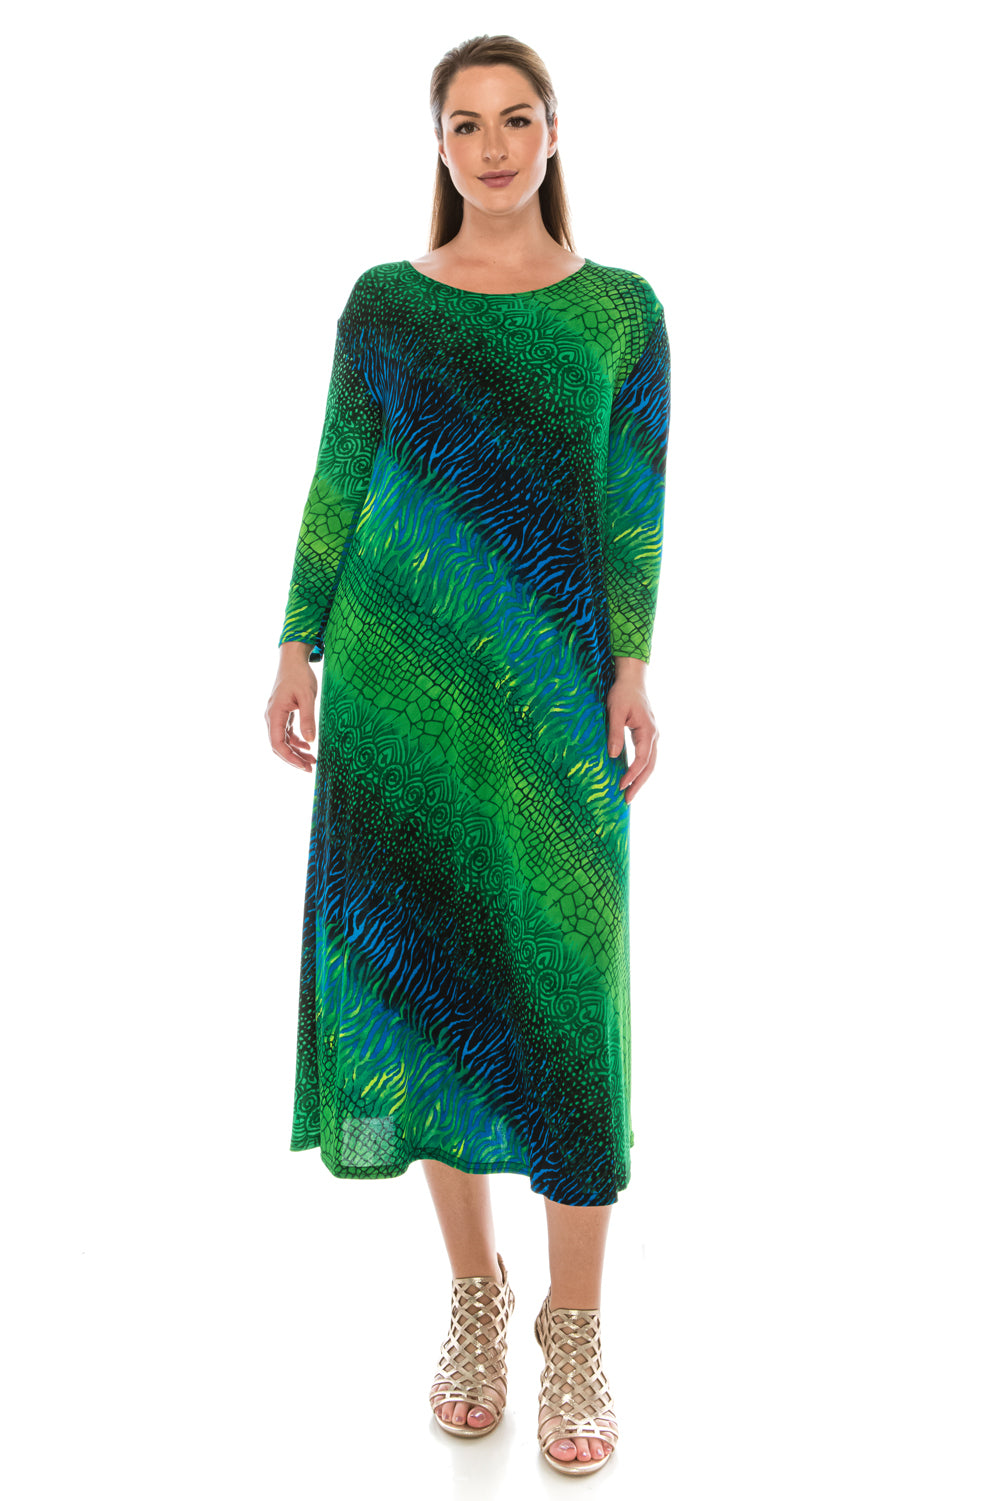 Jostar Women's Stretchy Long Dress 3/4 Sleeve Print, 702BN-QP-W182 - Jostar Online